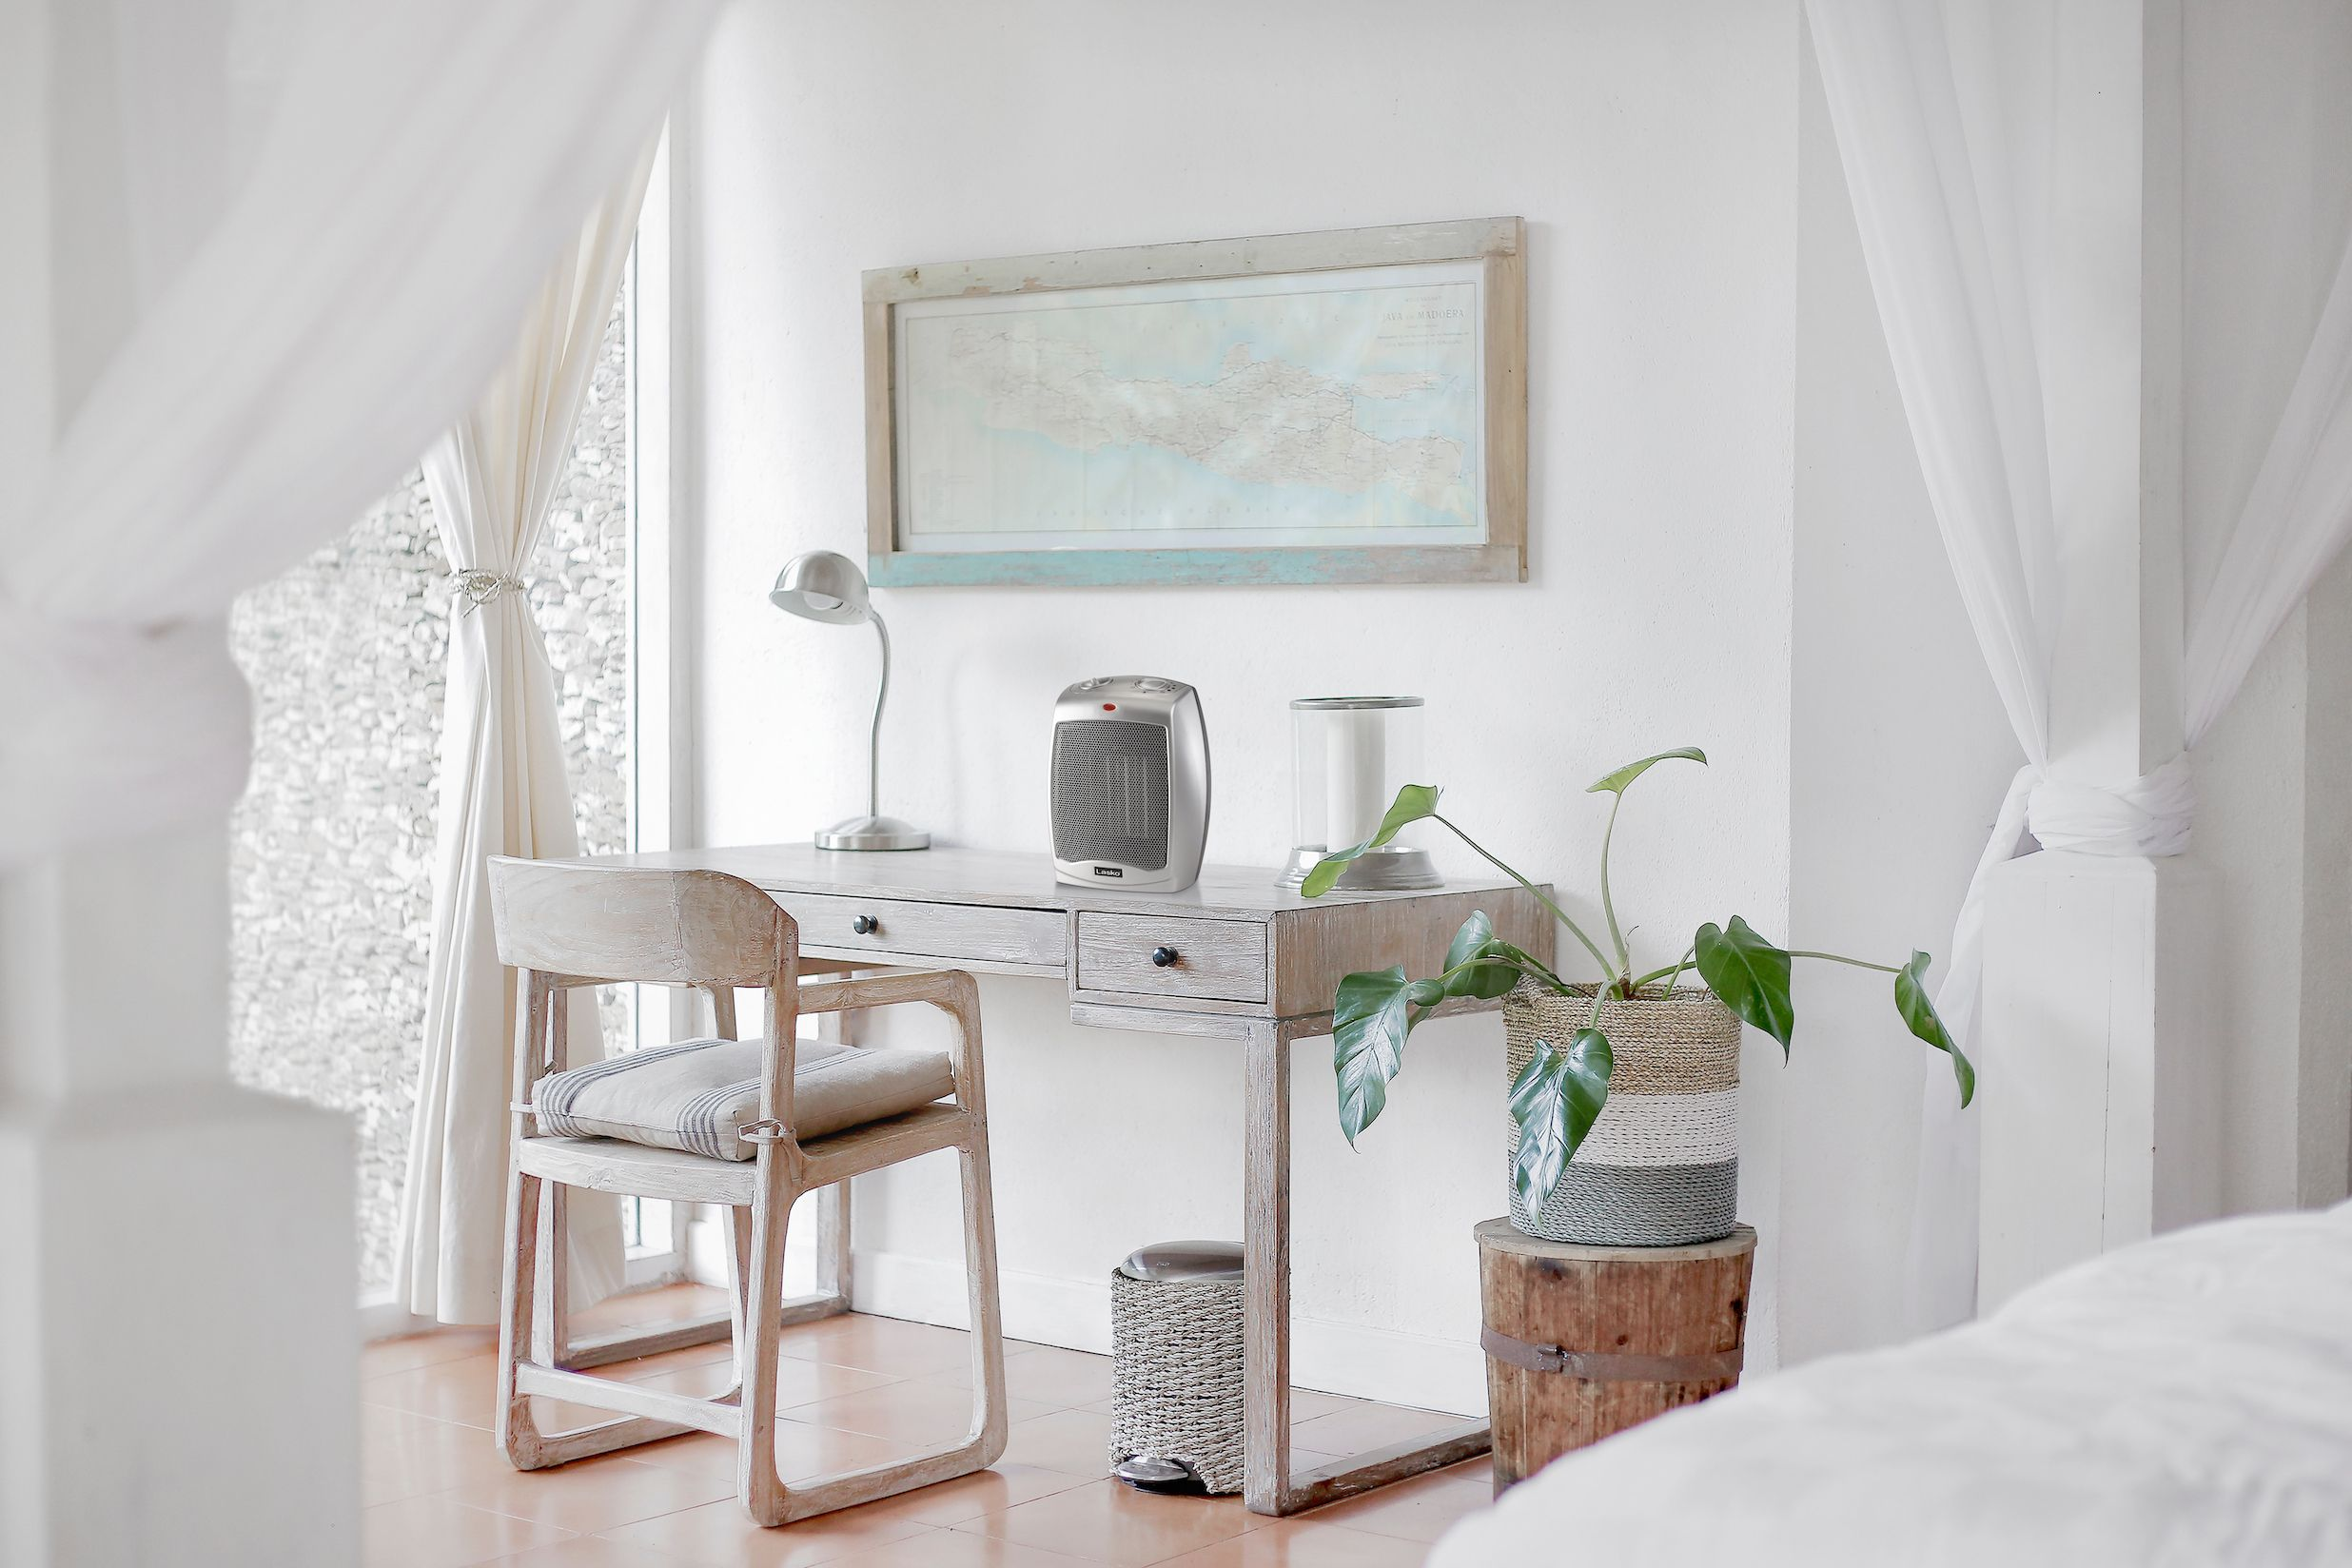 Ceramic Space Heater With Adjustable Thermostat Lasko White Bedroom Furniture Furniture Home